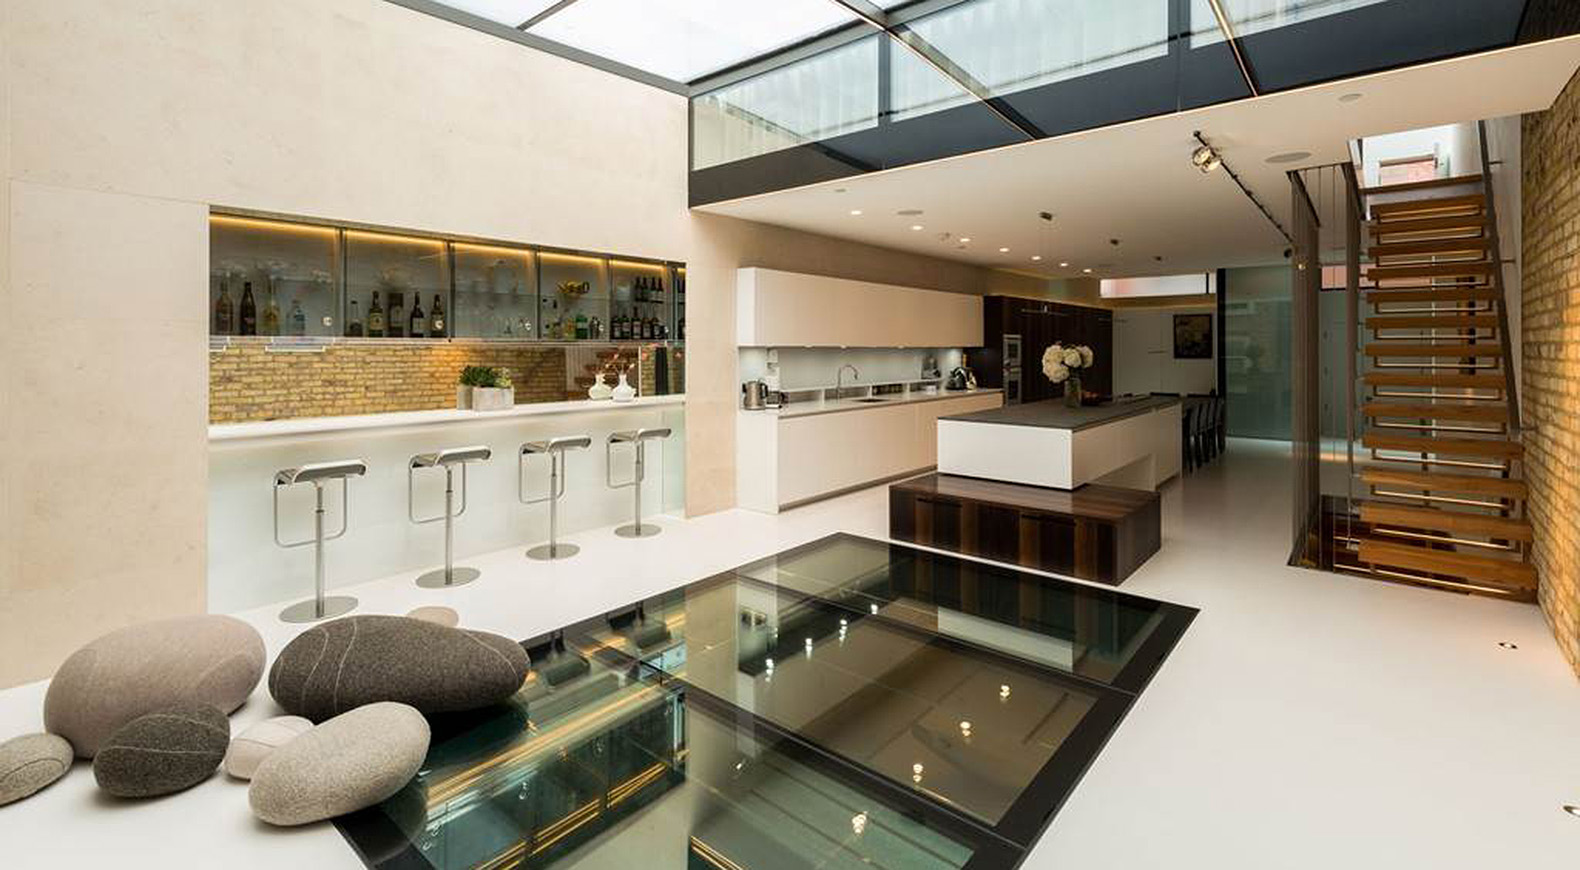 Infinity House Spaced Out Architects Green Renovation London Architecture Inner